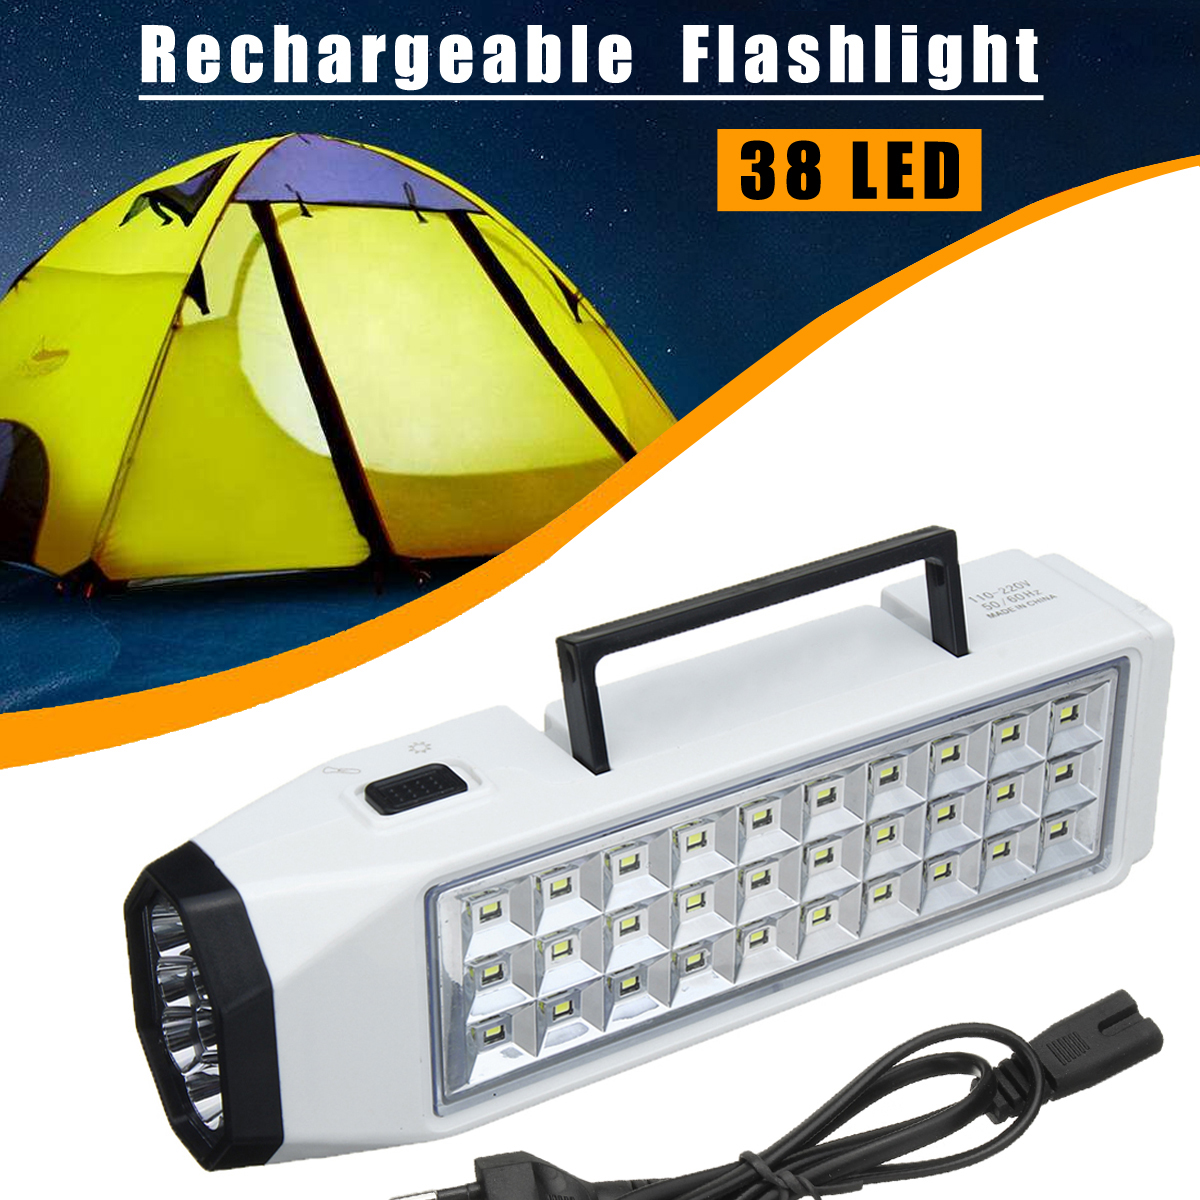 110-220V 38 LED Flashlight Torch Portable Rechargeable Emergency Light Lamp Home Outdoor Camping by